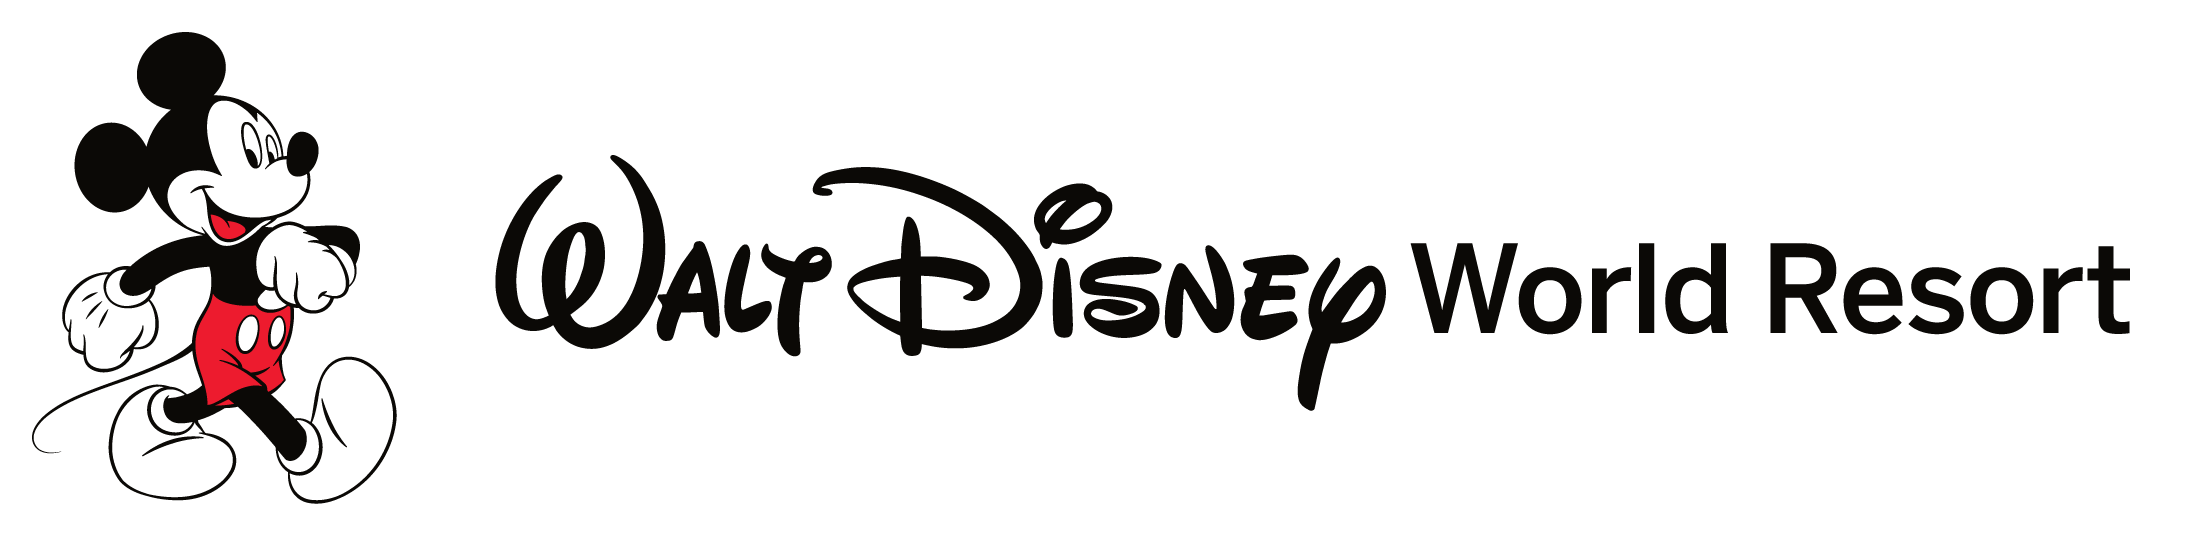 disney-world-logopin-walking-mickey-walt-disney-world-resort-logo-02-on-pinteres